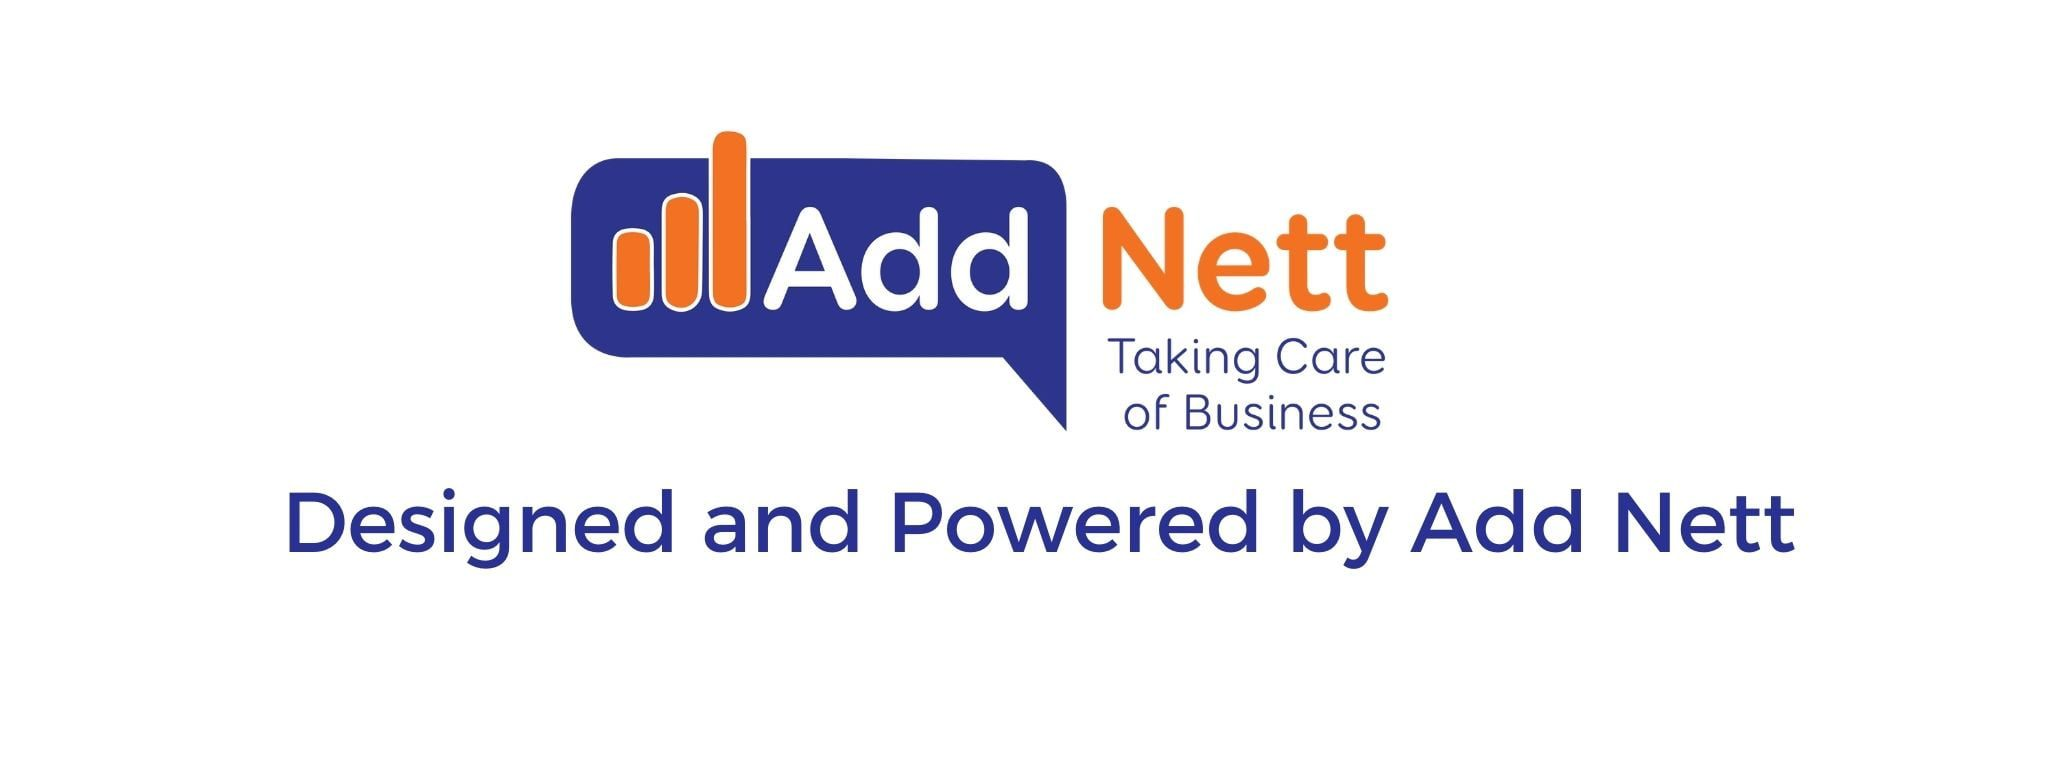 Add Nett Taking Care of Business - Designed and Powered by Add Nett